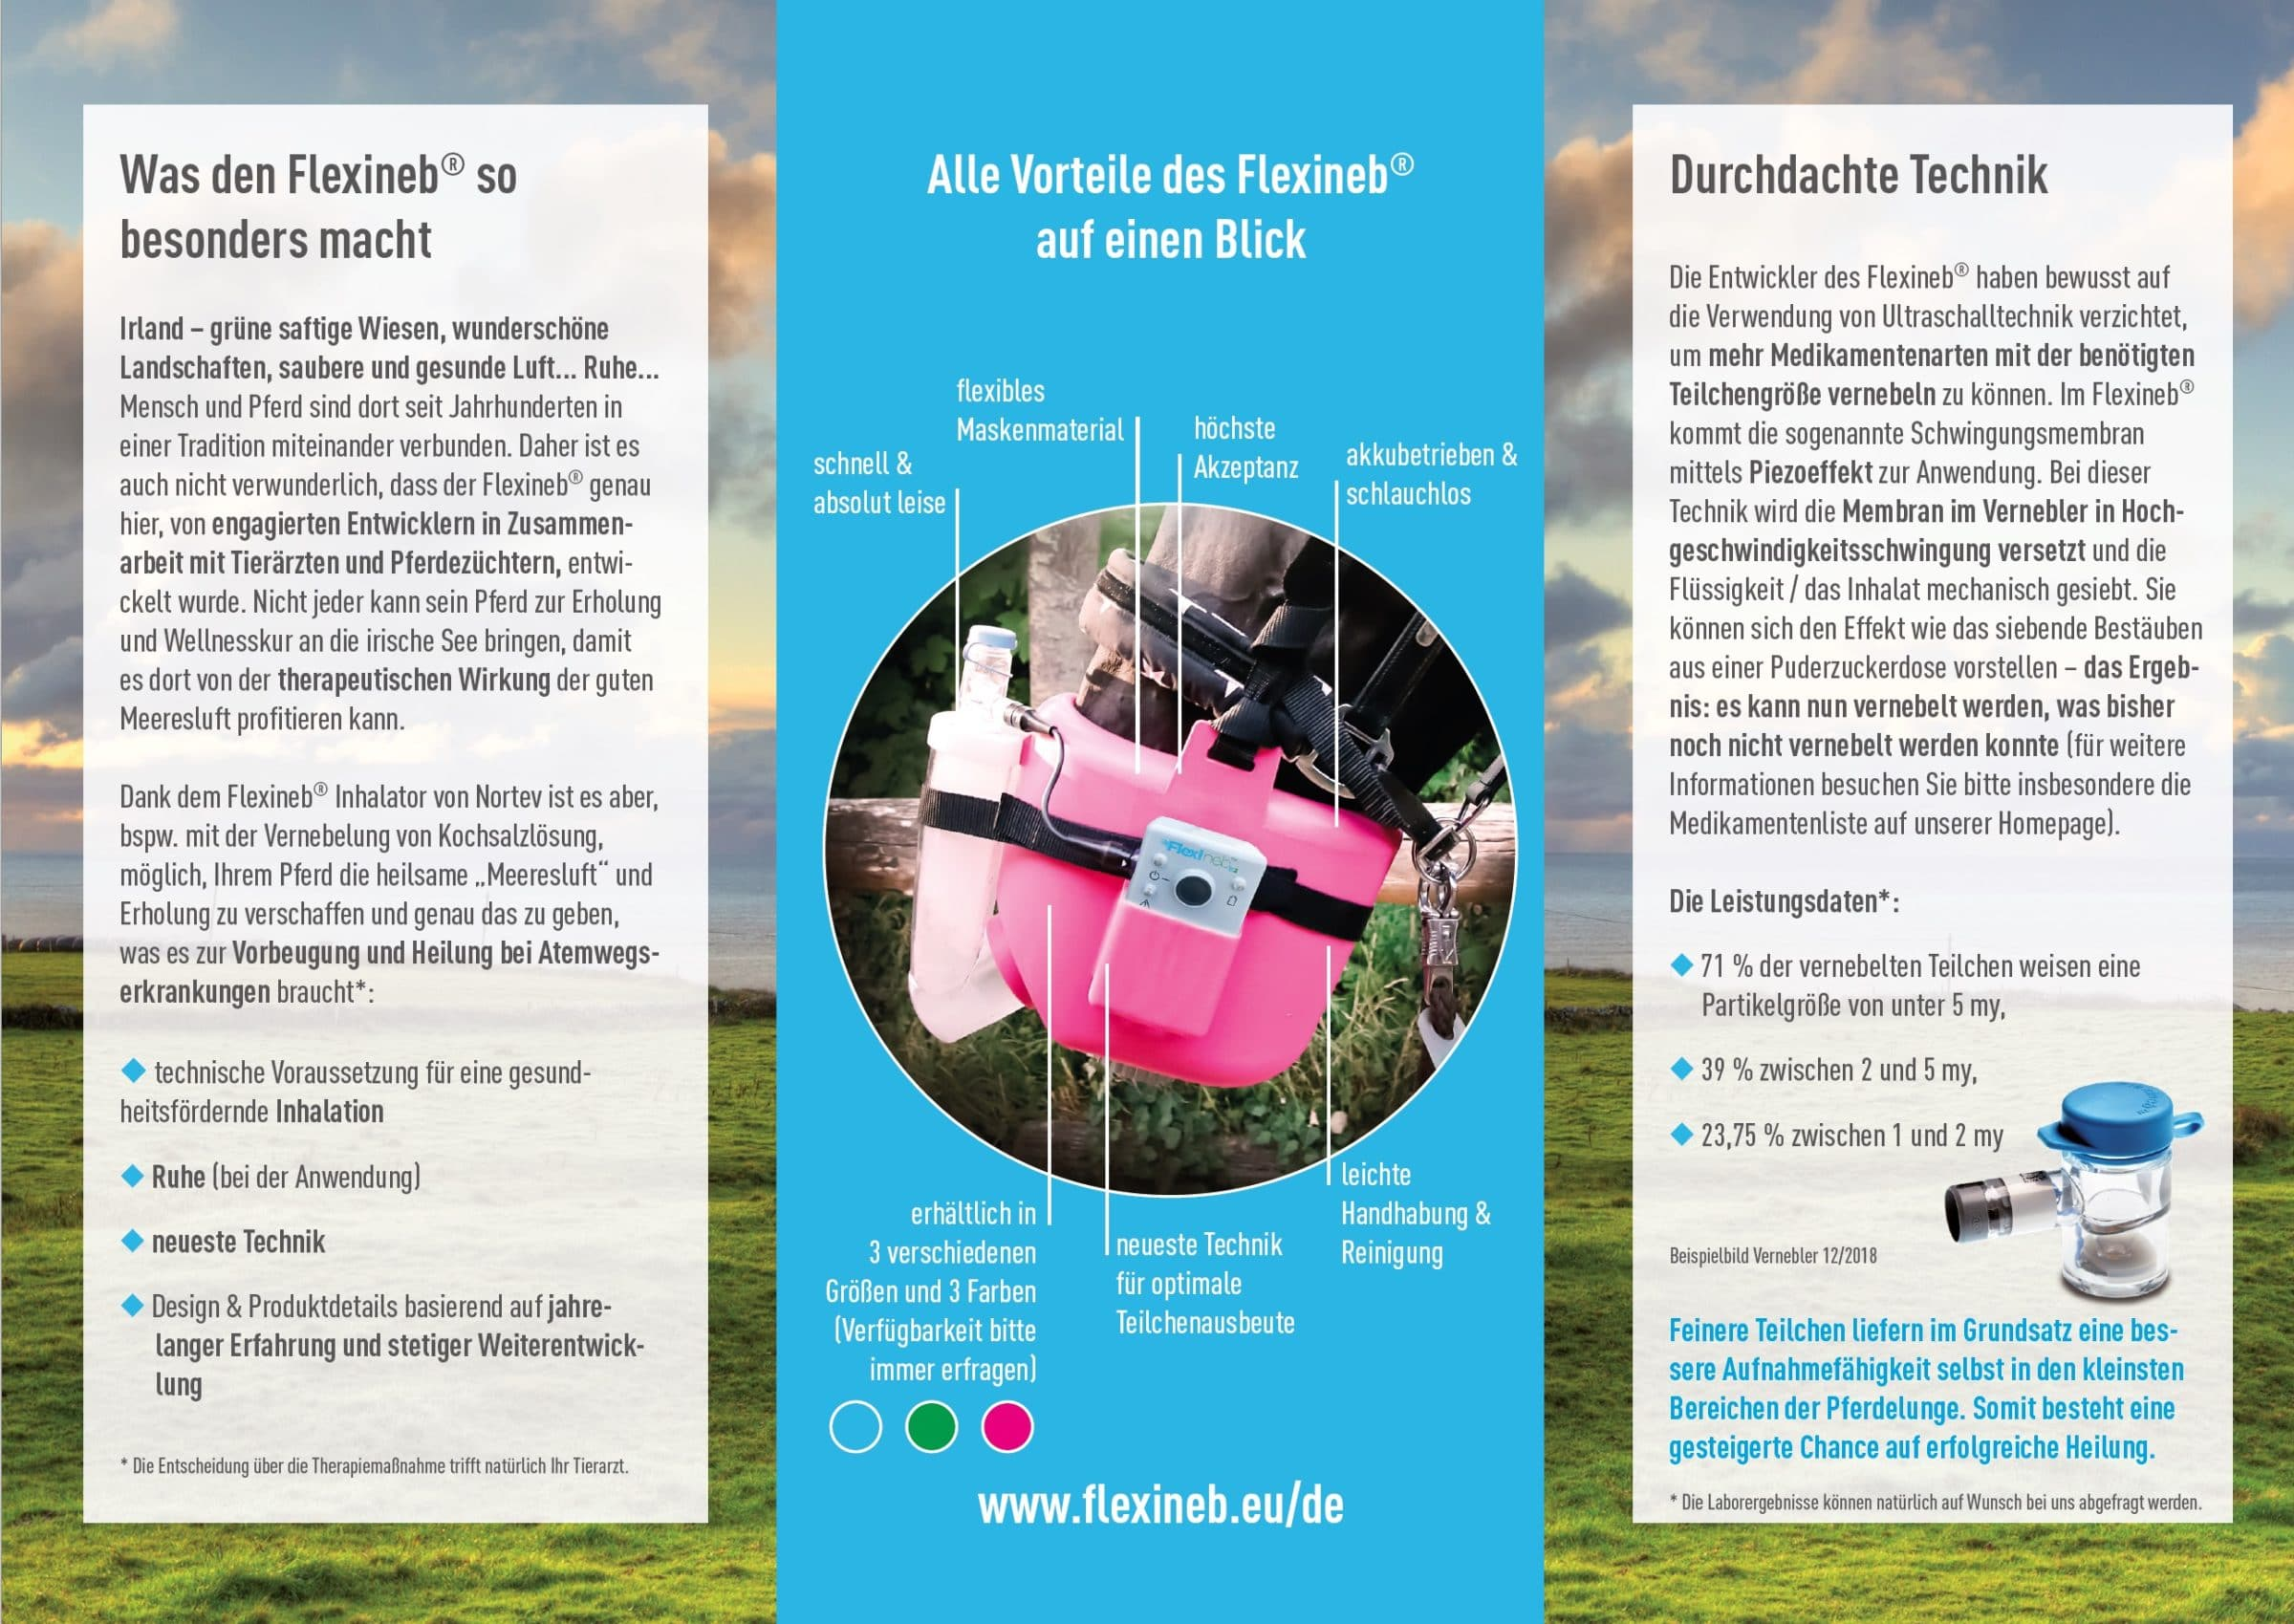 Flyer Flexineb De 04 19 2